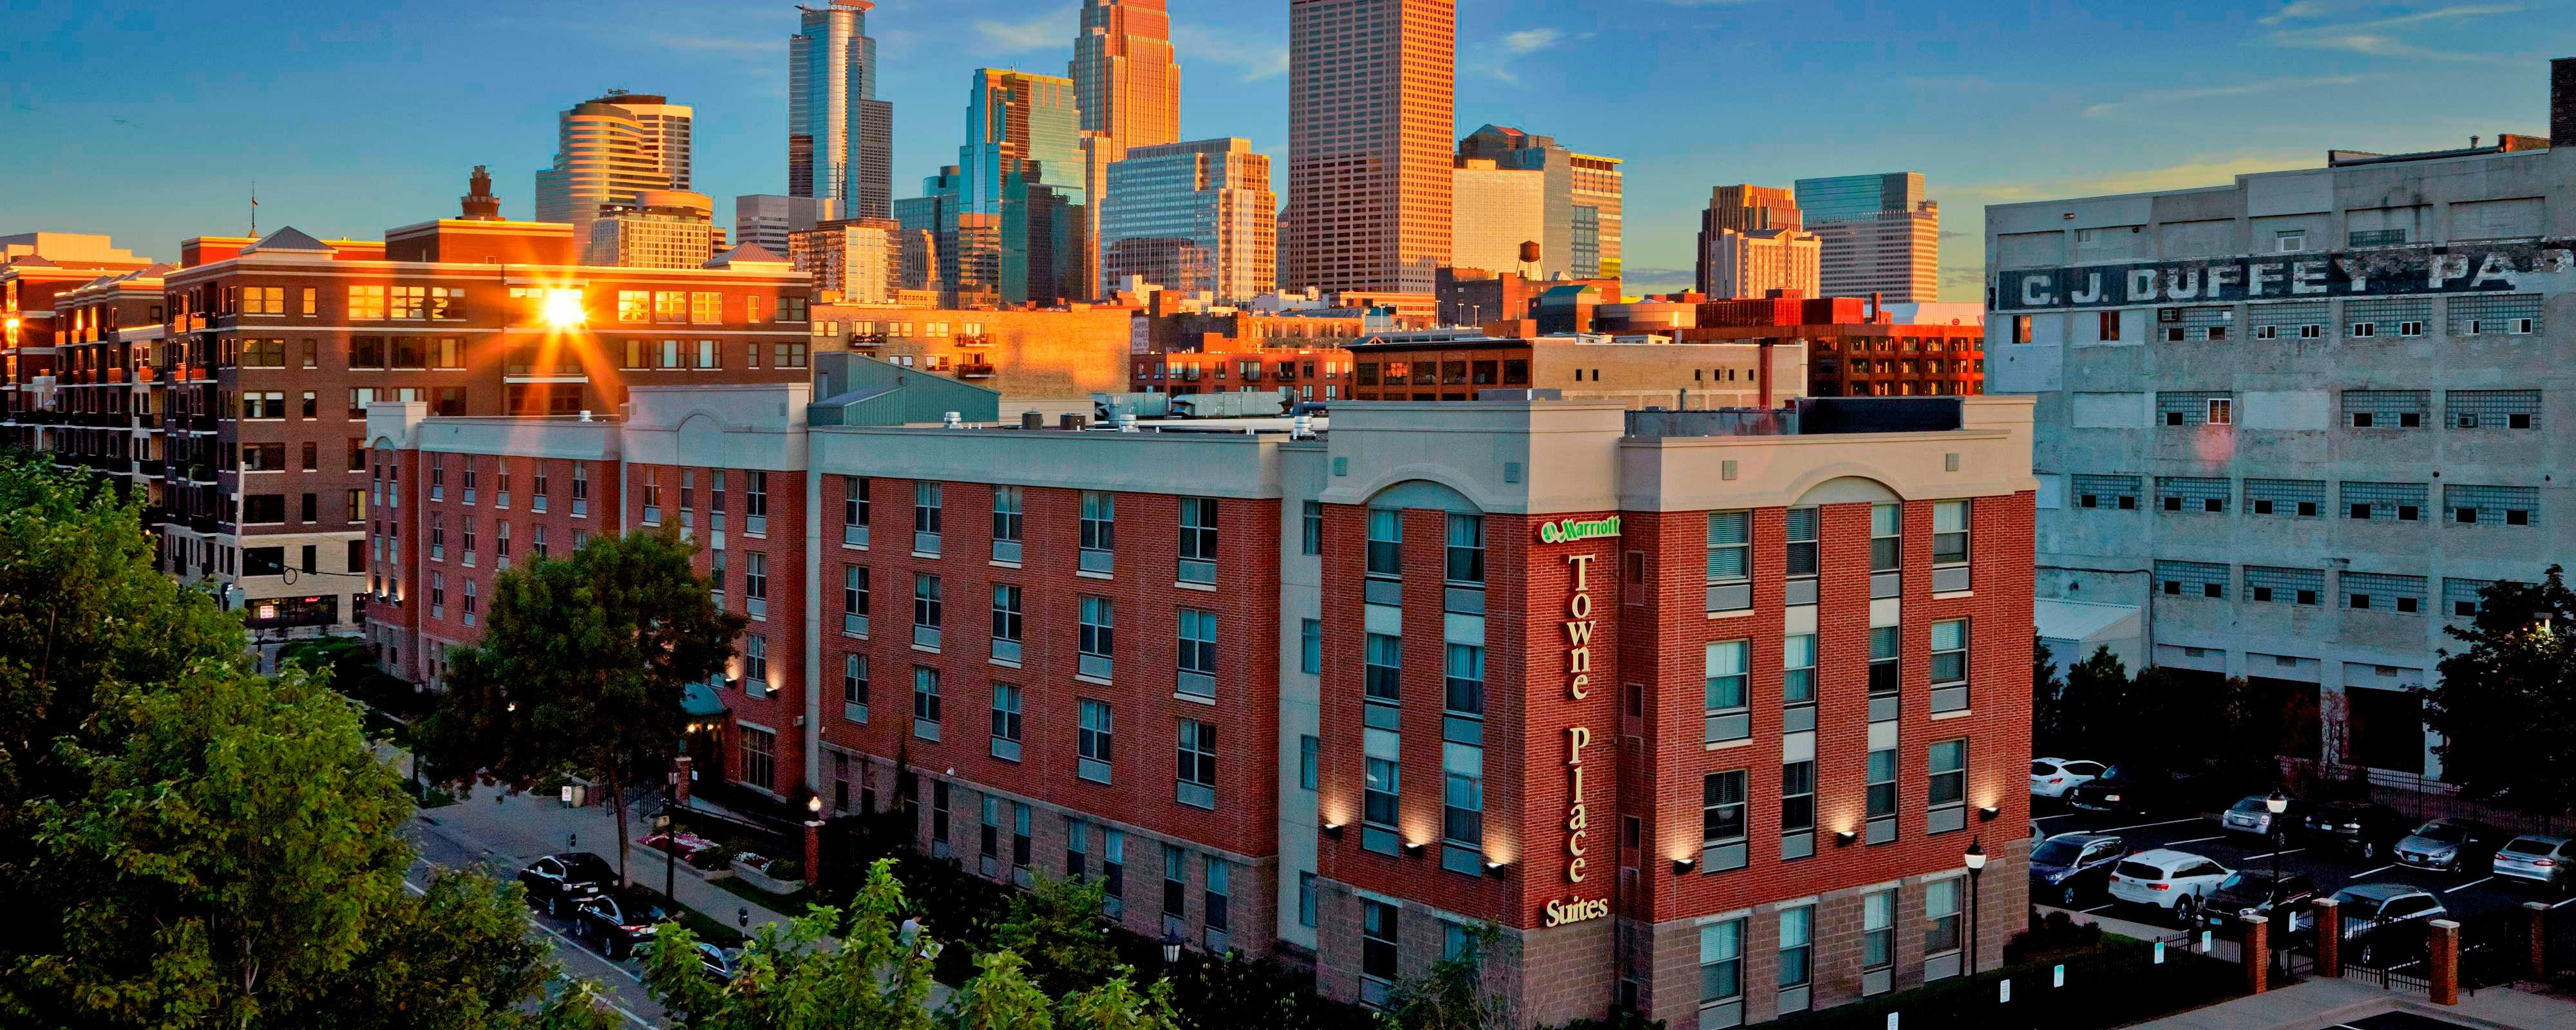 hotels in downtown minneapolis towneplace suites north loop. Black Bedroom Furniture Sets. Home Design Ideas